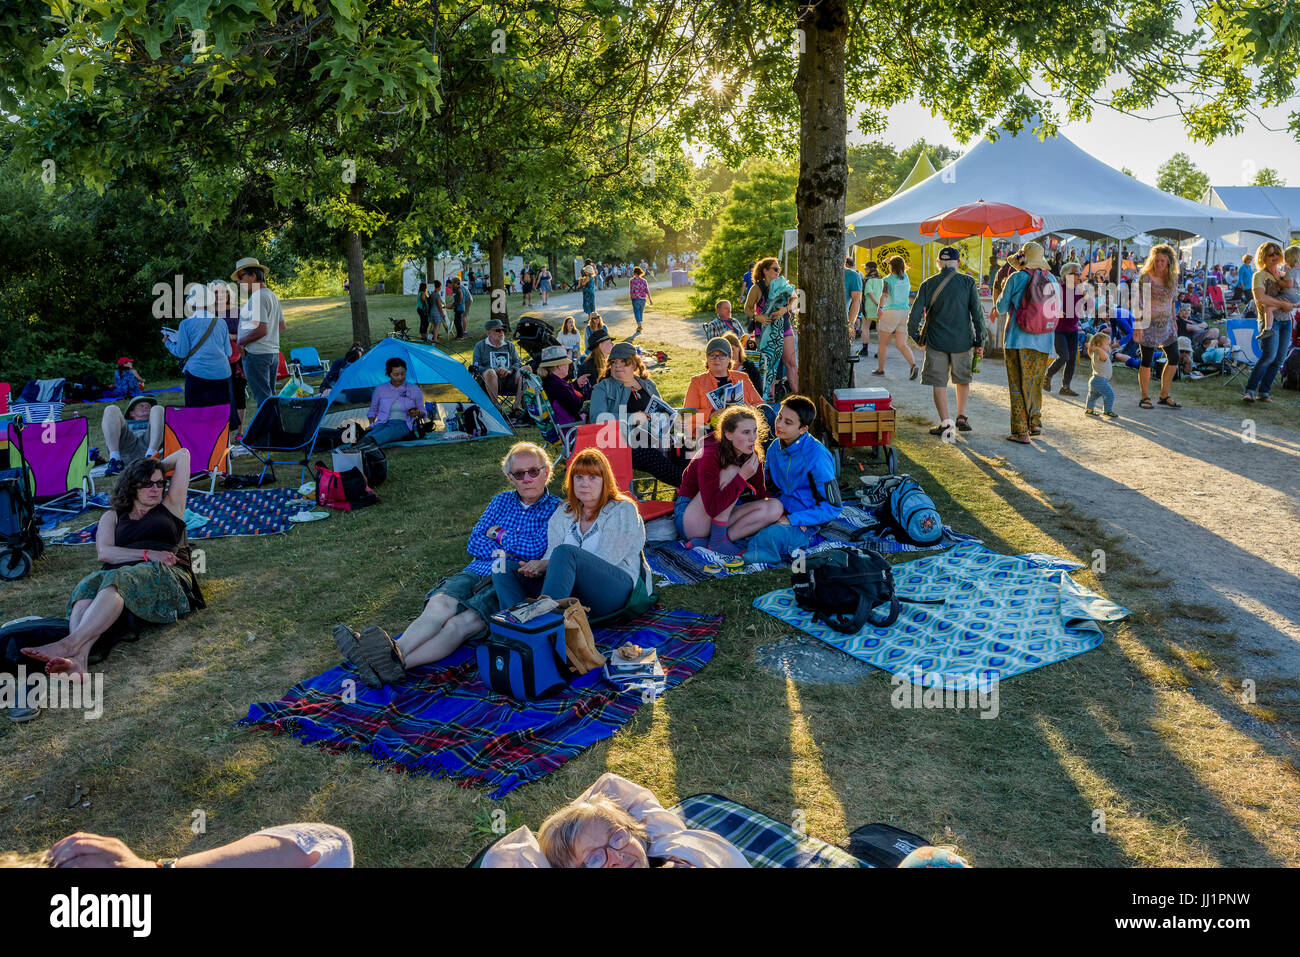 Crowd enjoys the 40th Annual Vancouver Folk Music Festival, Vancouver, British Columbia, Canada. - Stock Image